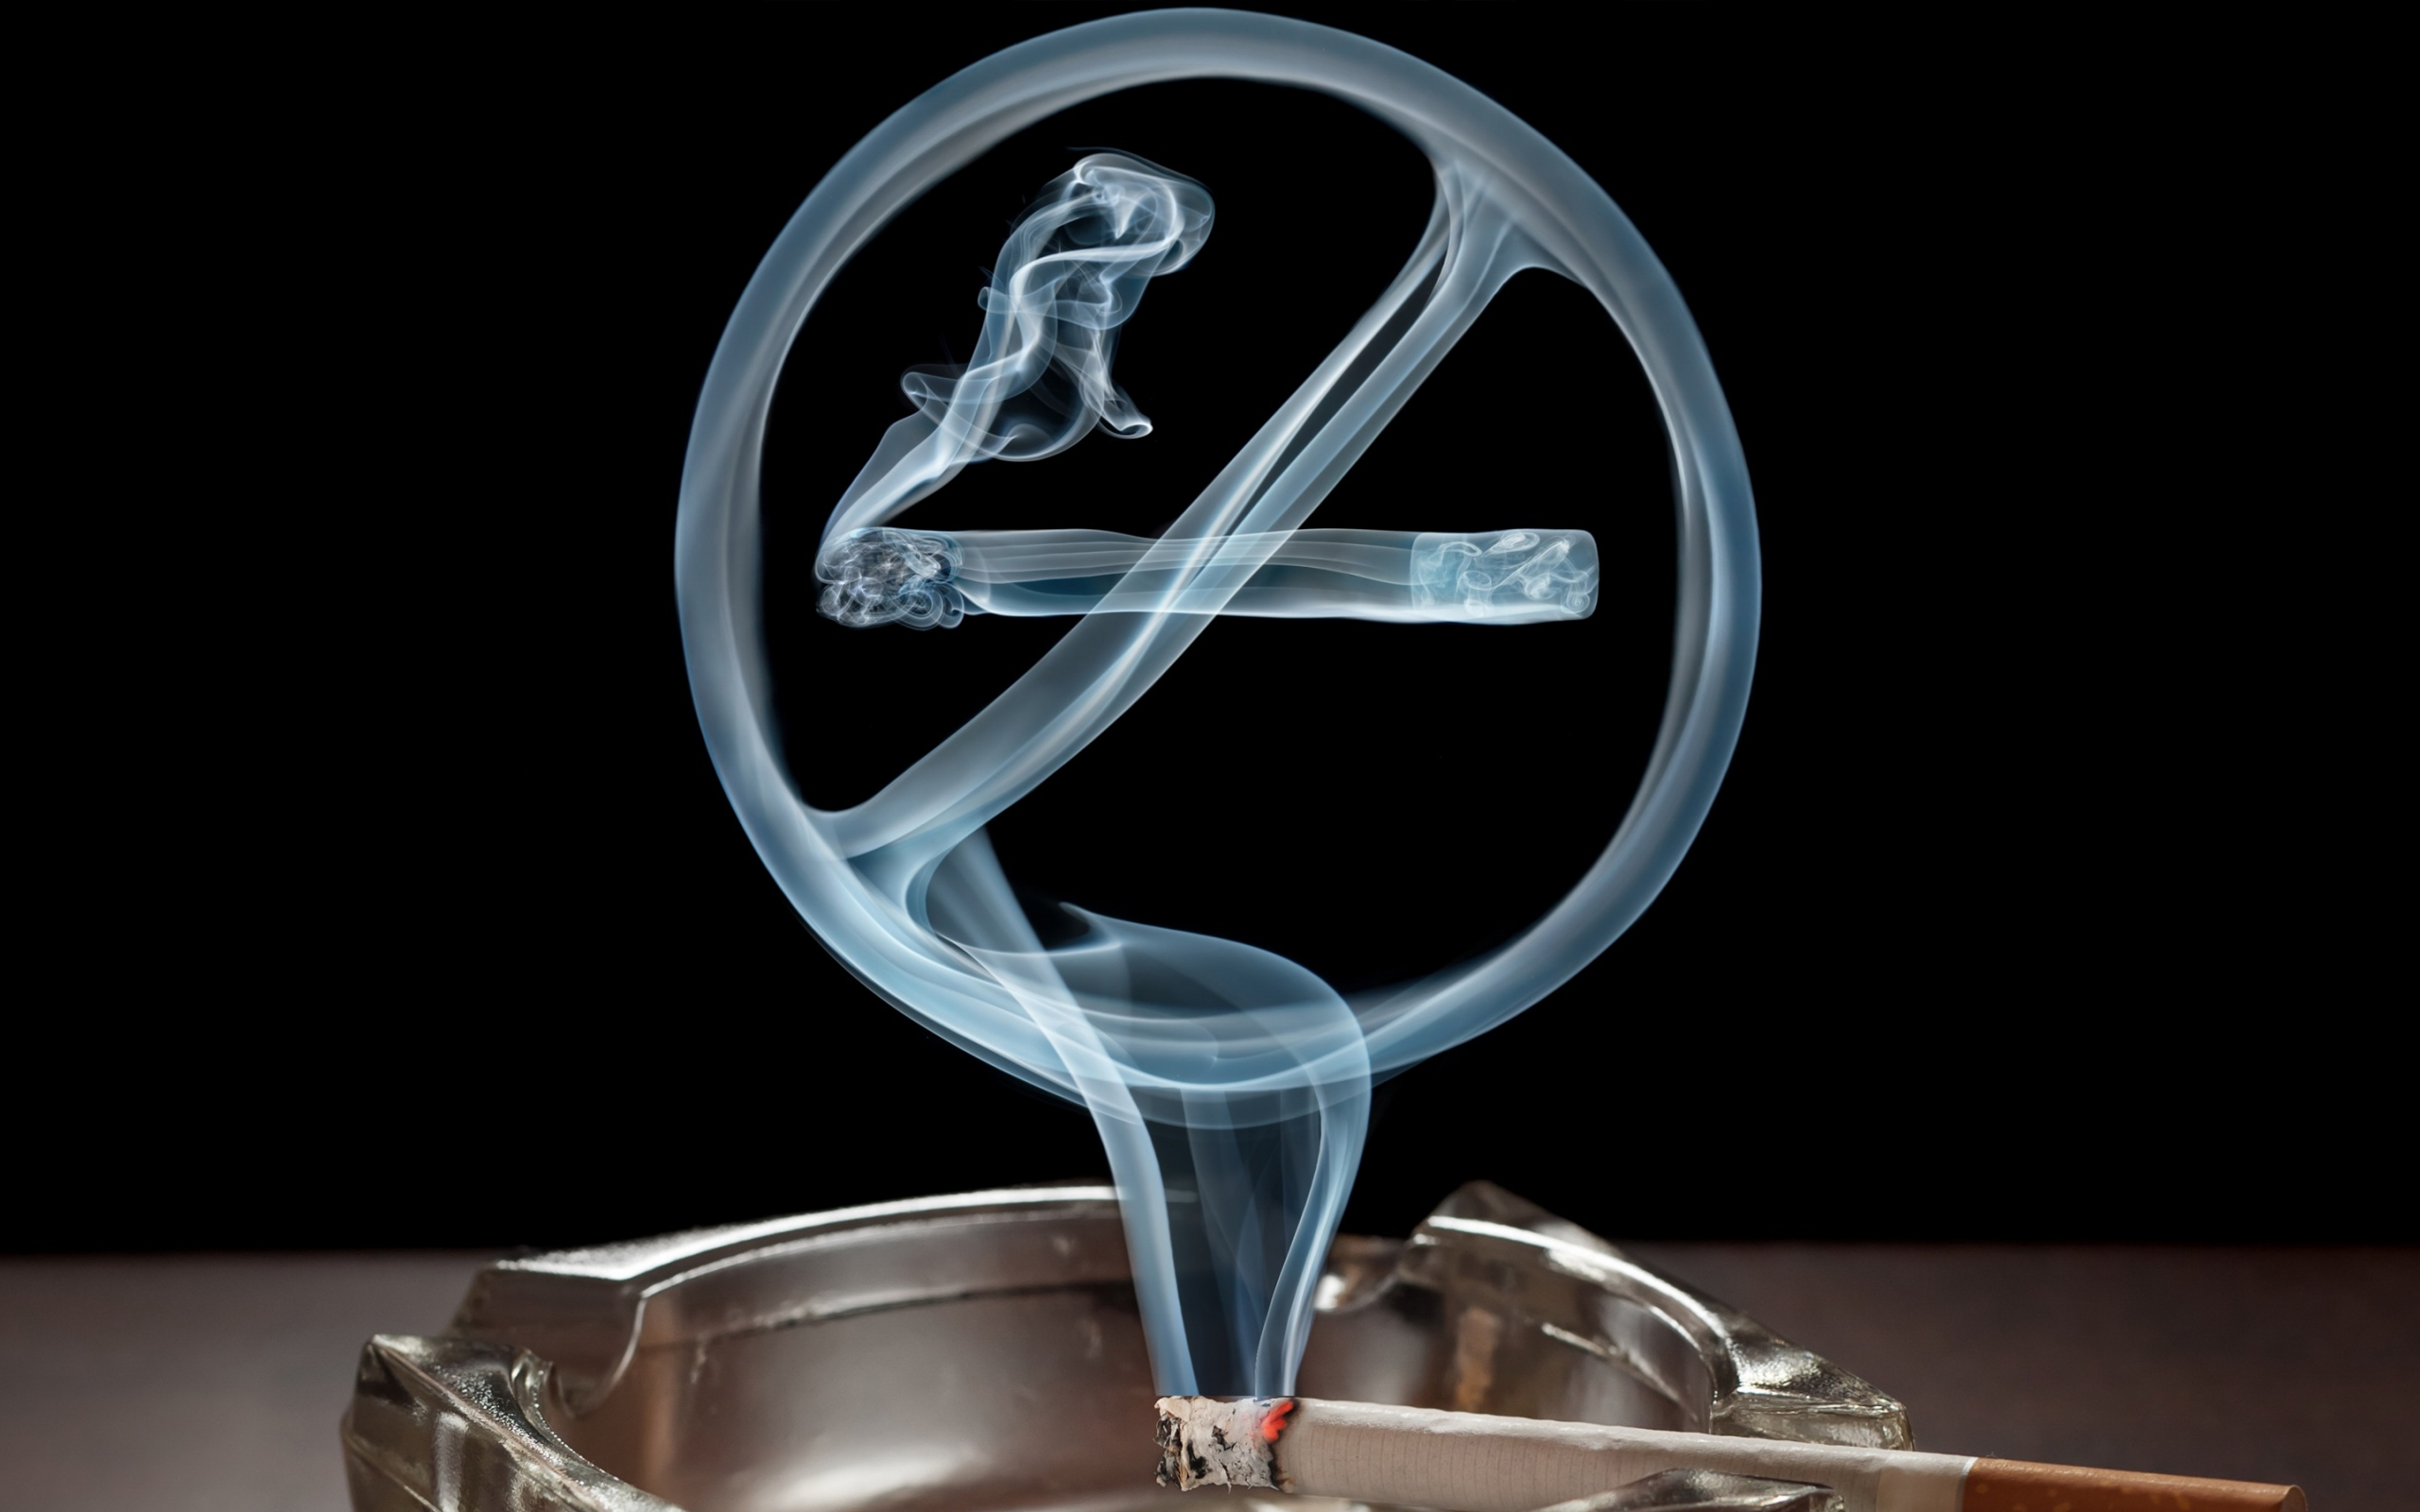 2 no smoking hd wallpapers backgrounds wallpaper abyss - No smoking wallpaper download ...